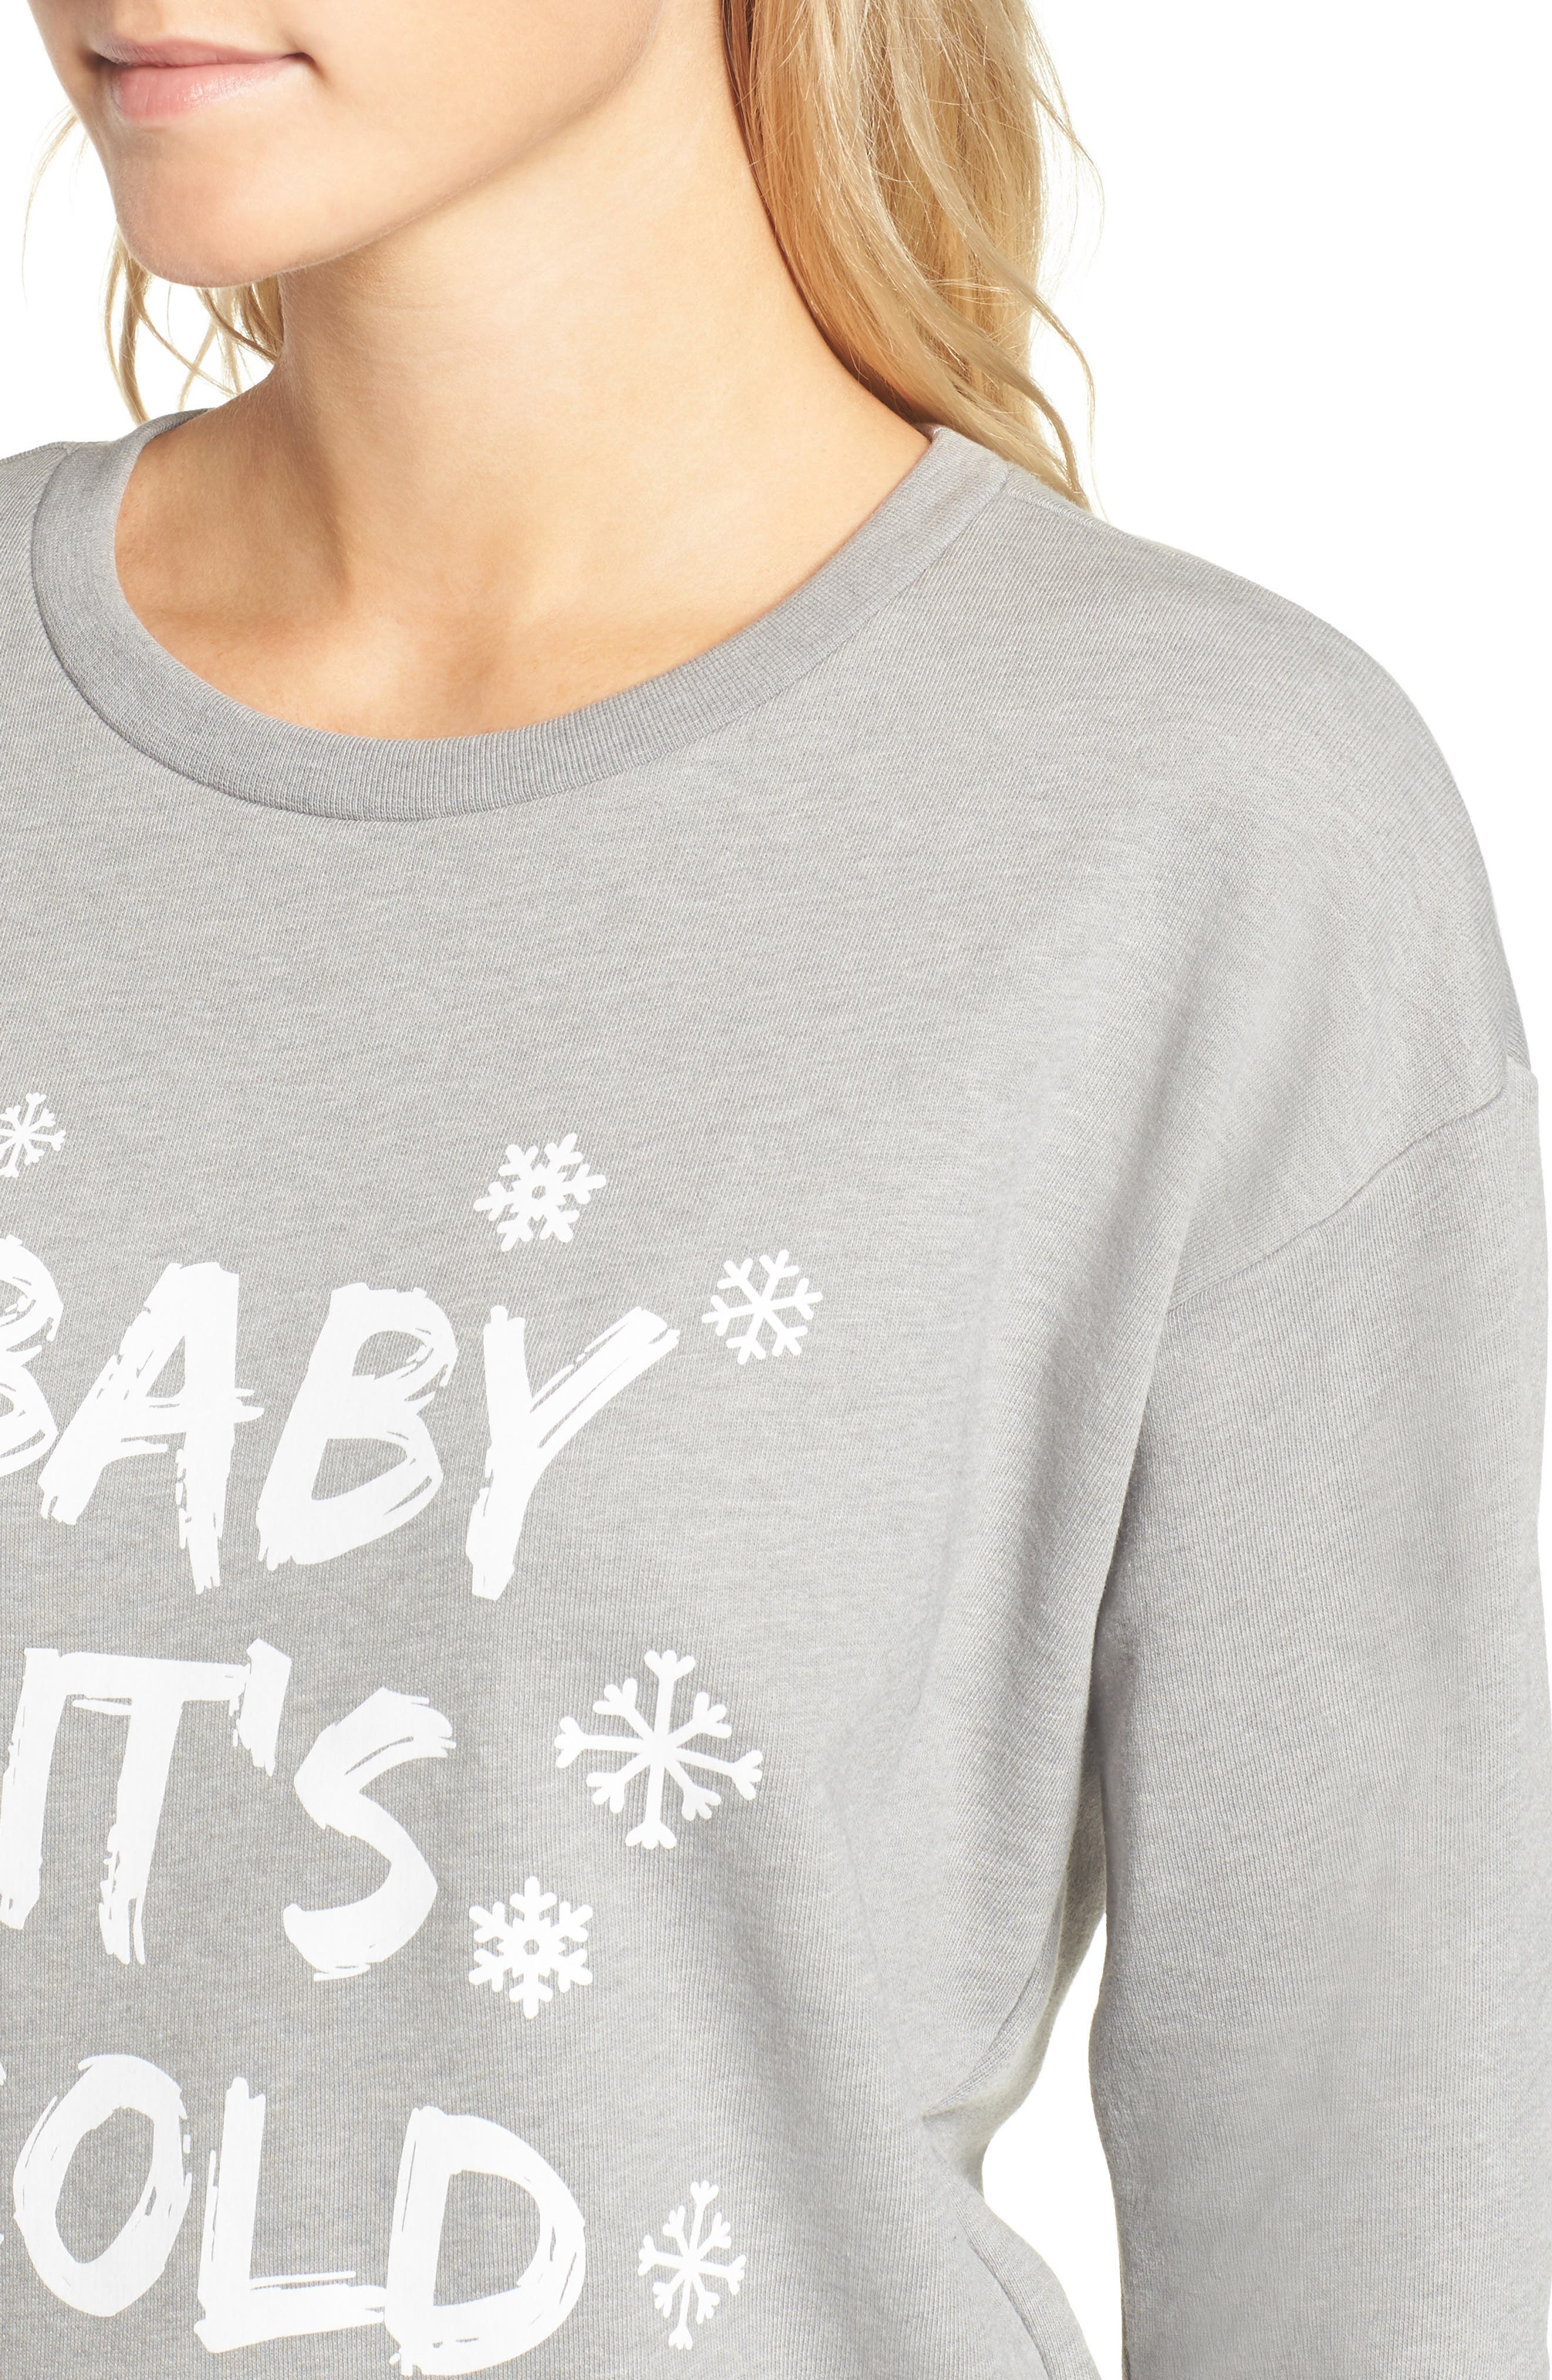 Baby It's Cold Outside Sweatshirt,                             Alternate thumbnail 4, color,                             020